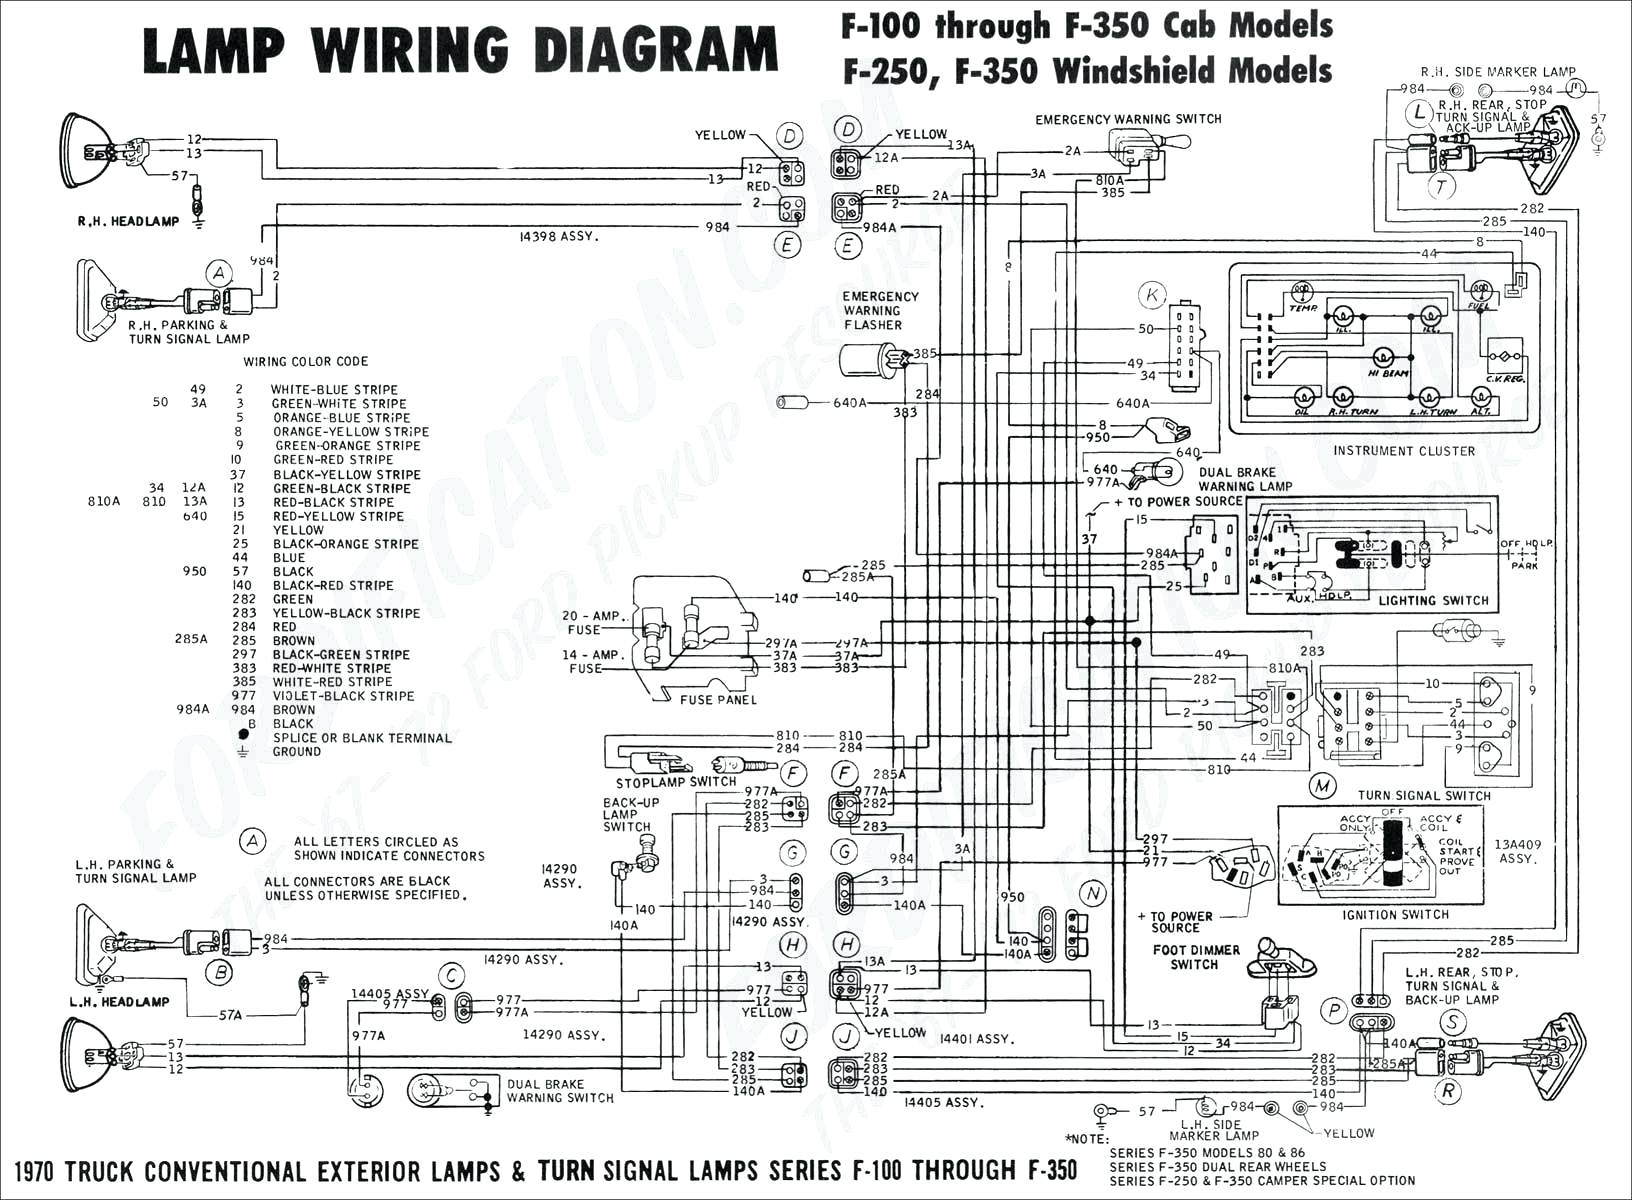 Ford Truck Wire Diagram F 350 sel 94 | Wiring Diagram on